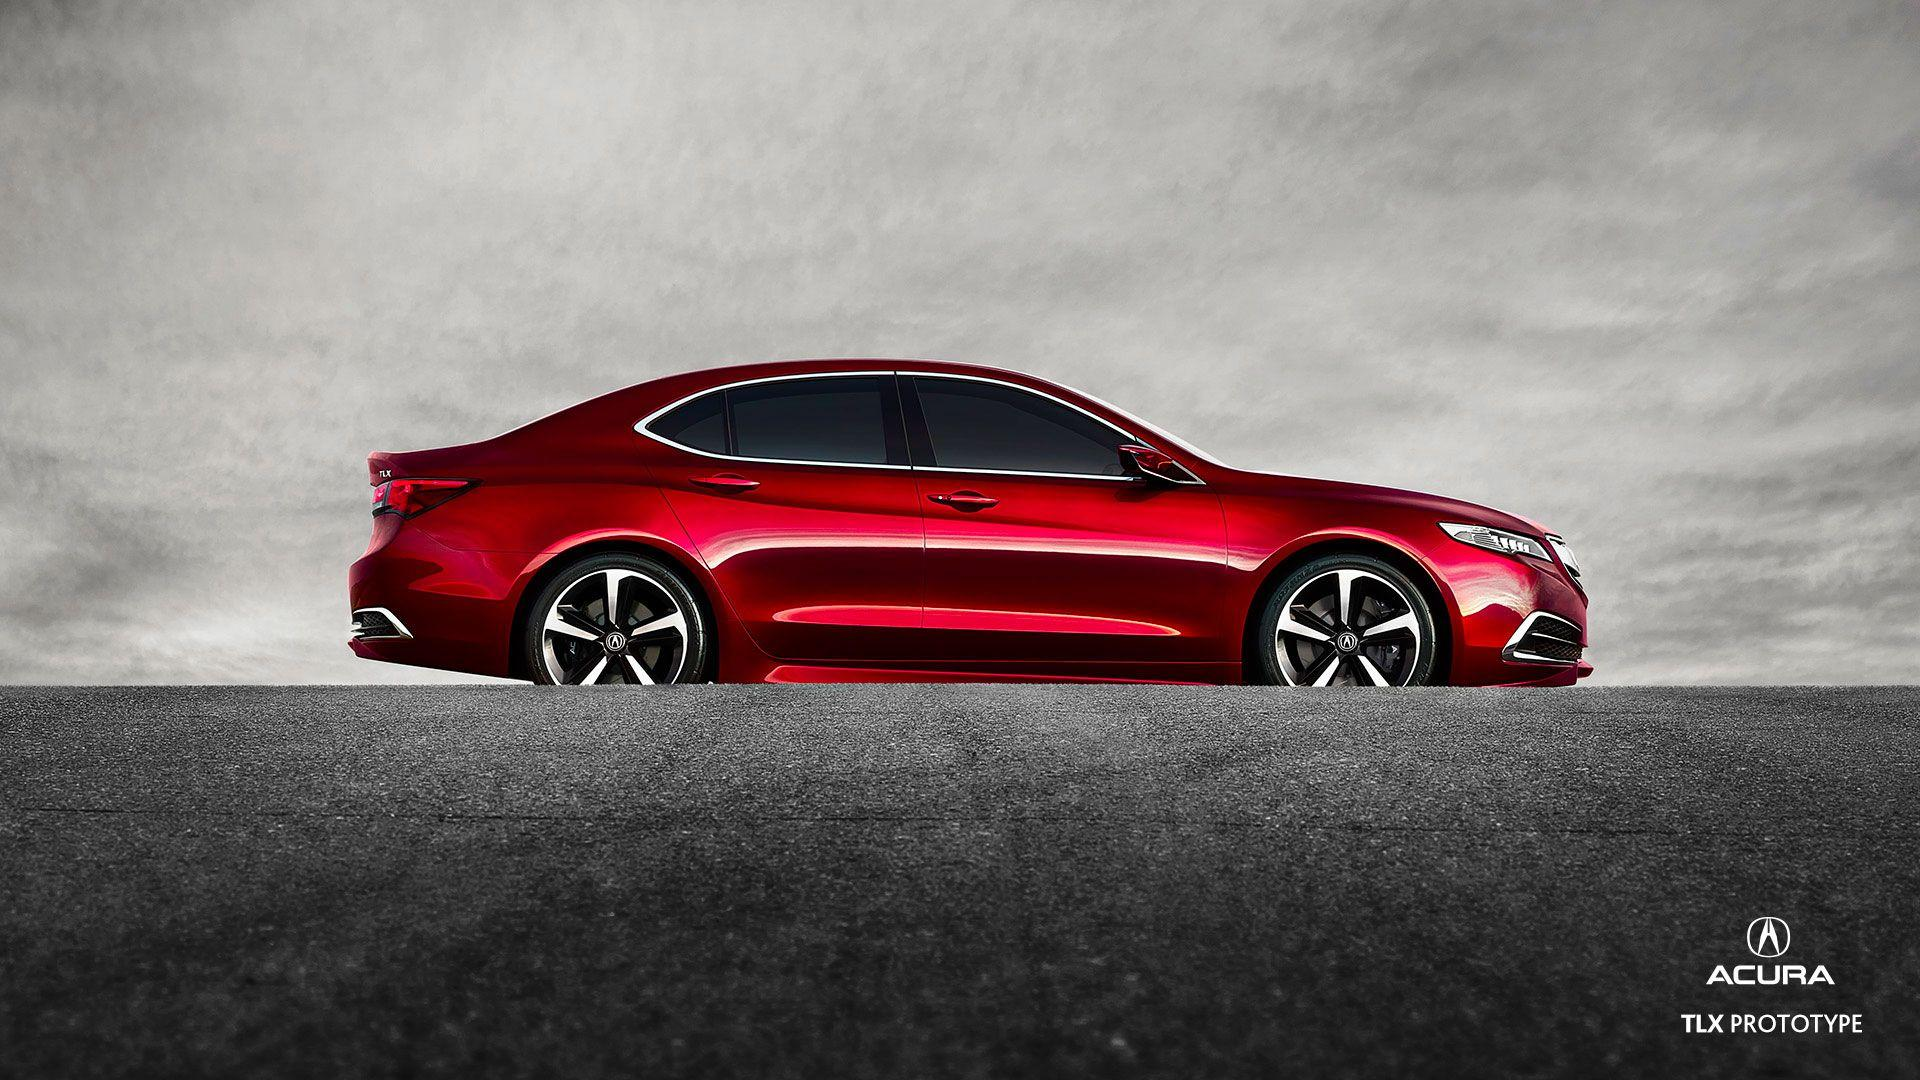 Acura TLX Wallpaper - image #120